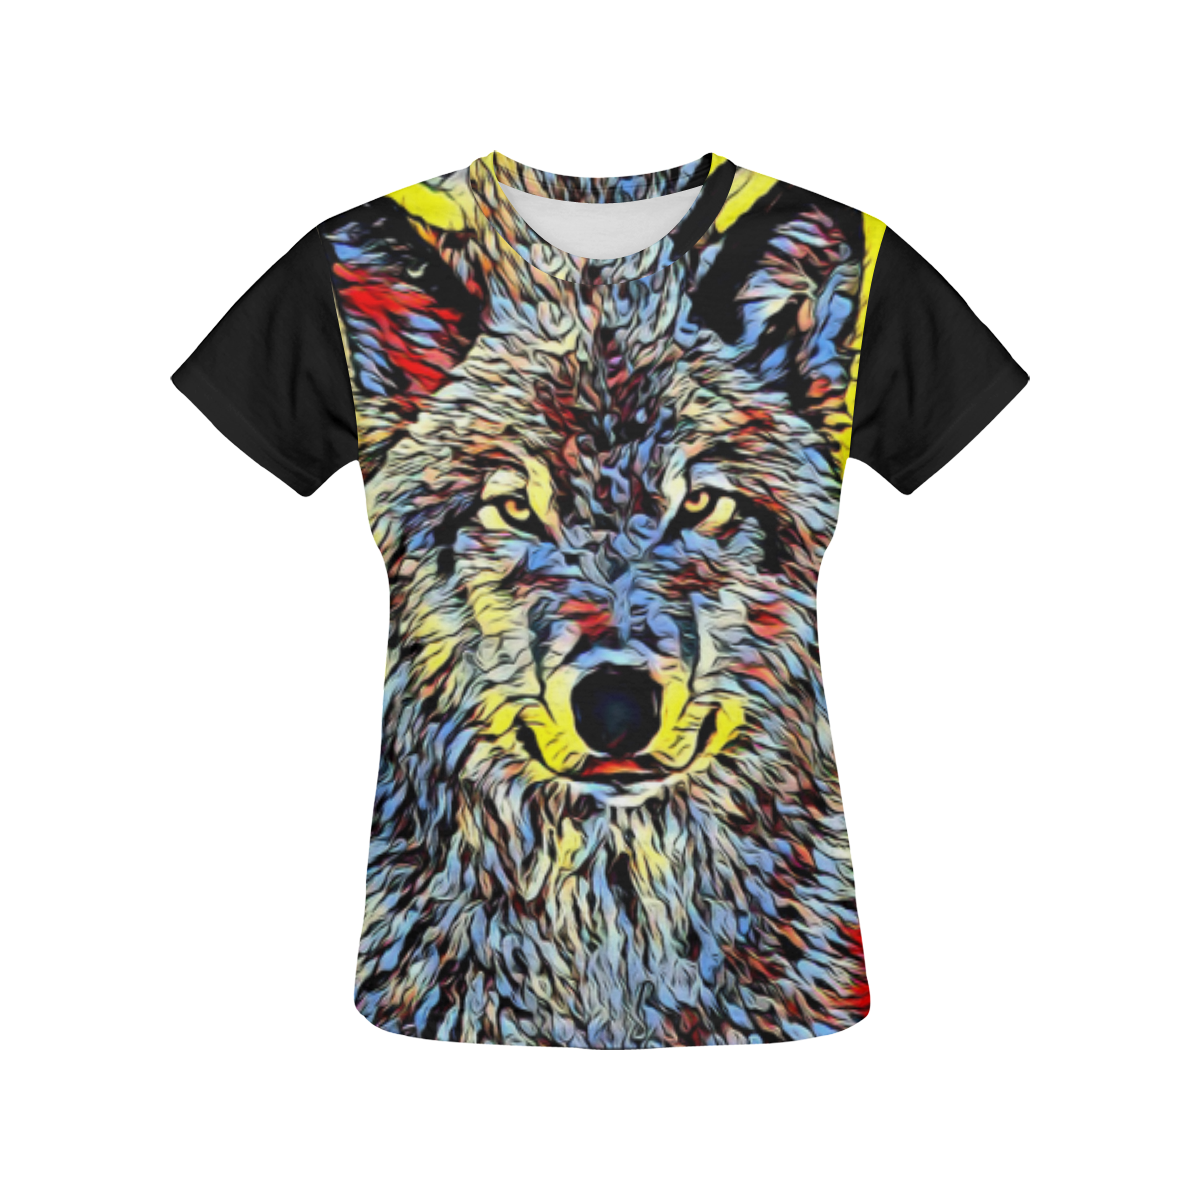 WOLF MULTICOLOR All Over Print T-Shirt for Women (USA Size) (Model T40)